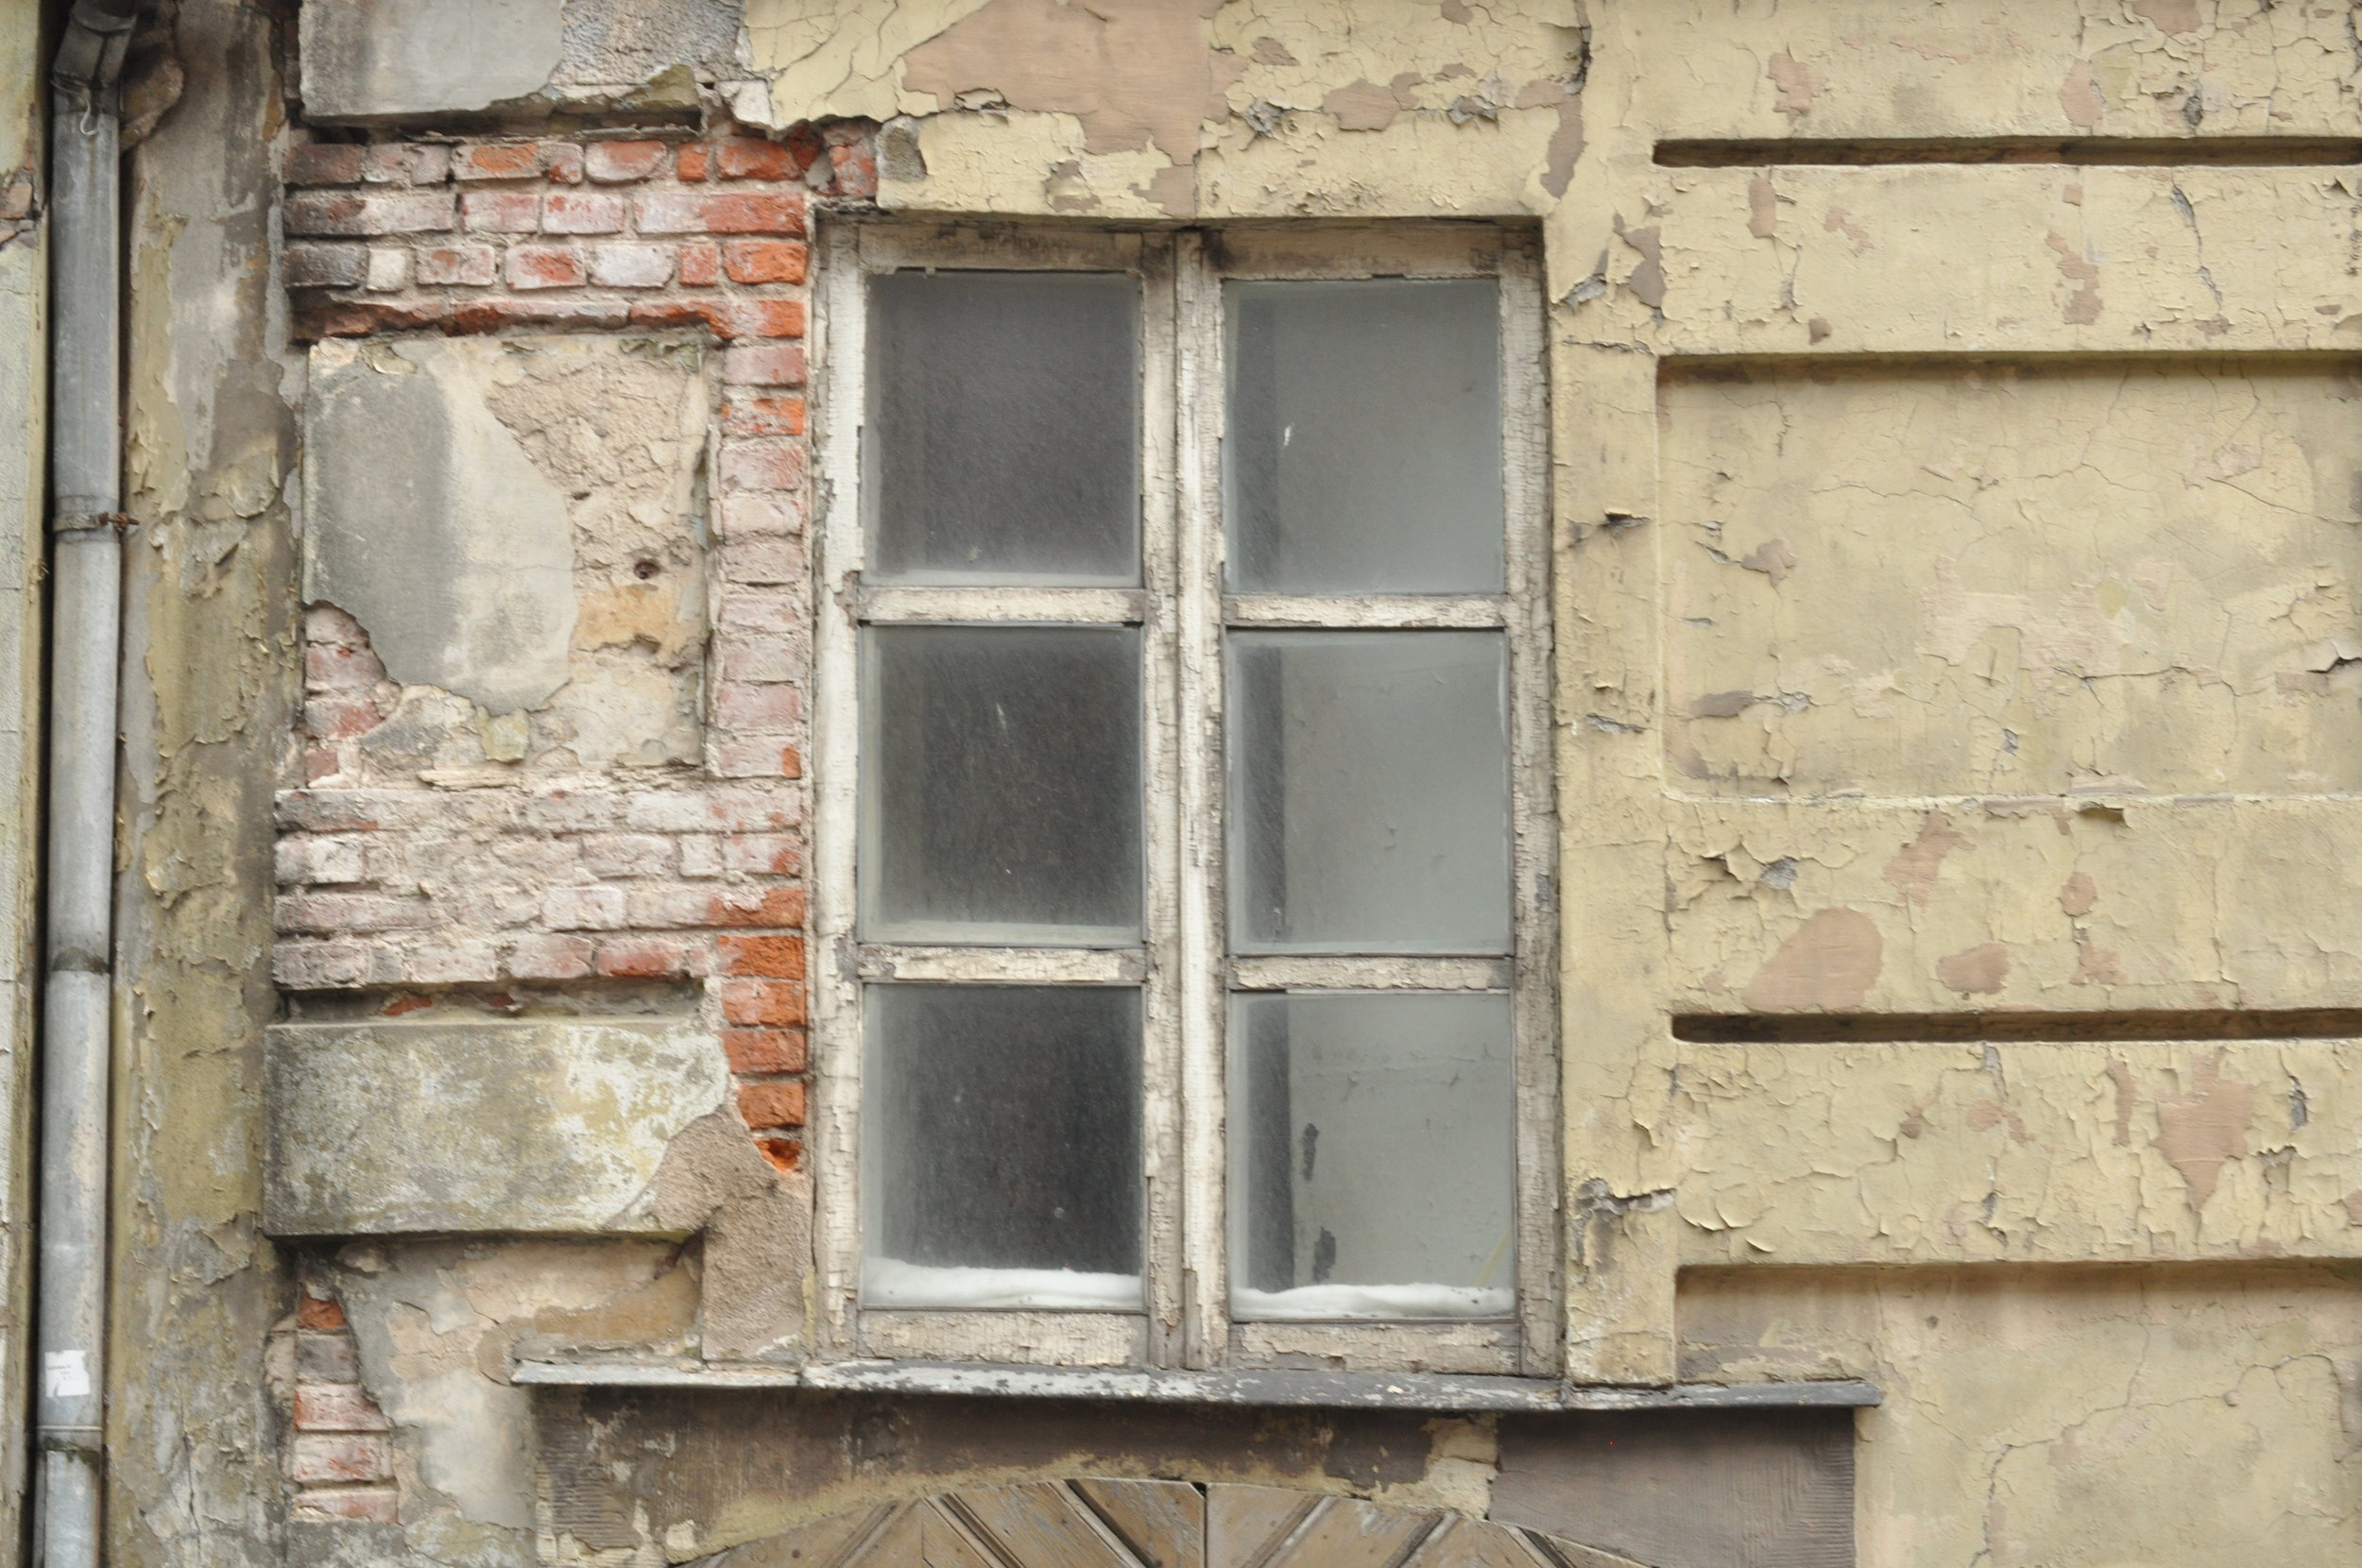 Crumbling brick and window in Riga, Latvia